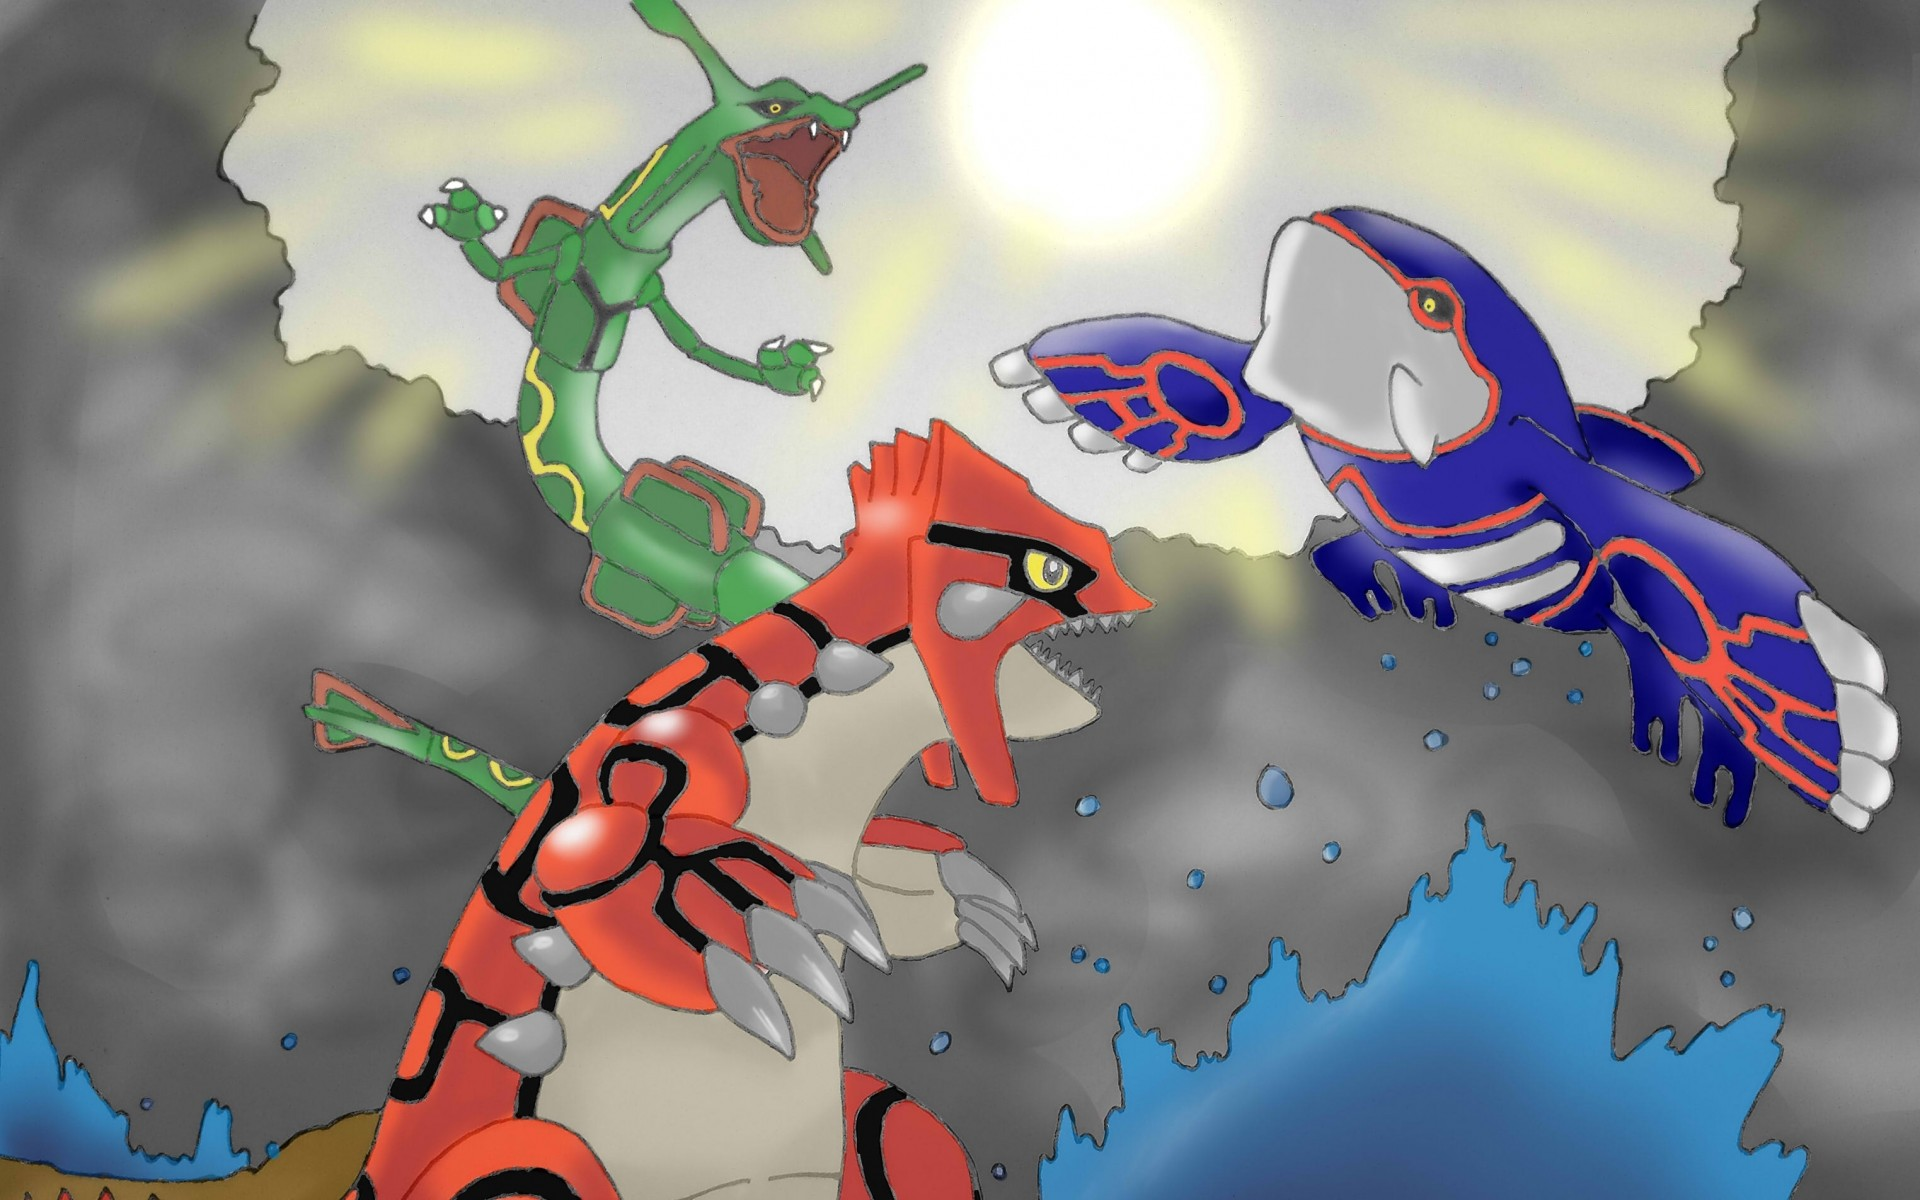 Download Wallpapers, Download kyogre groudon .